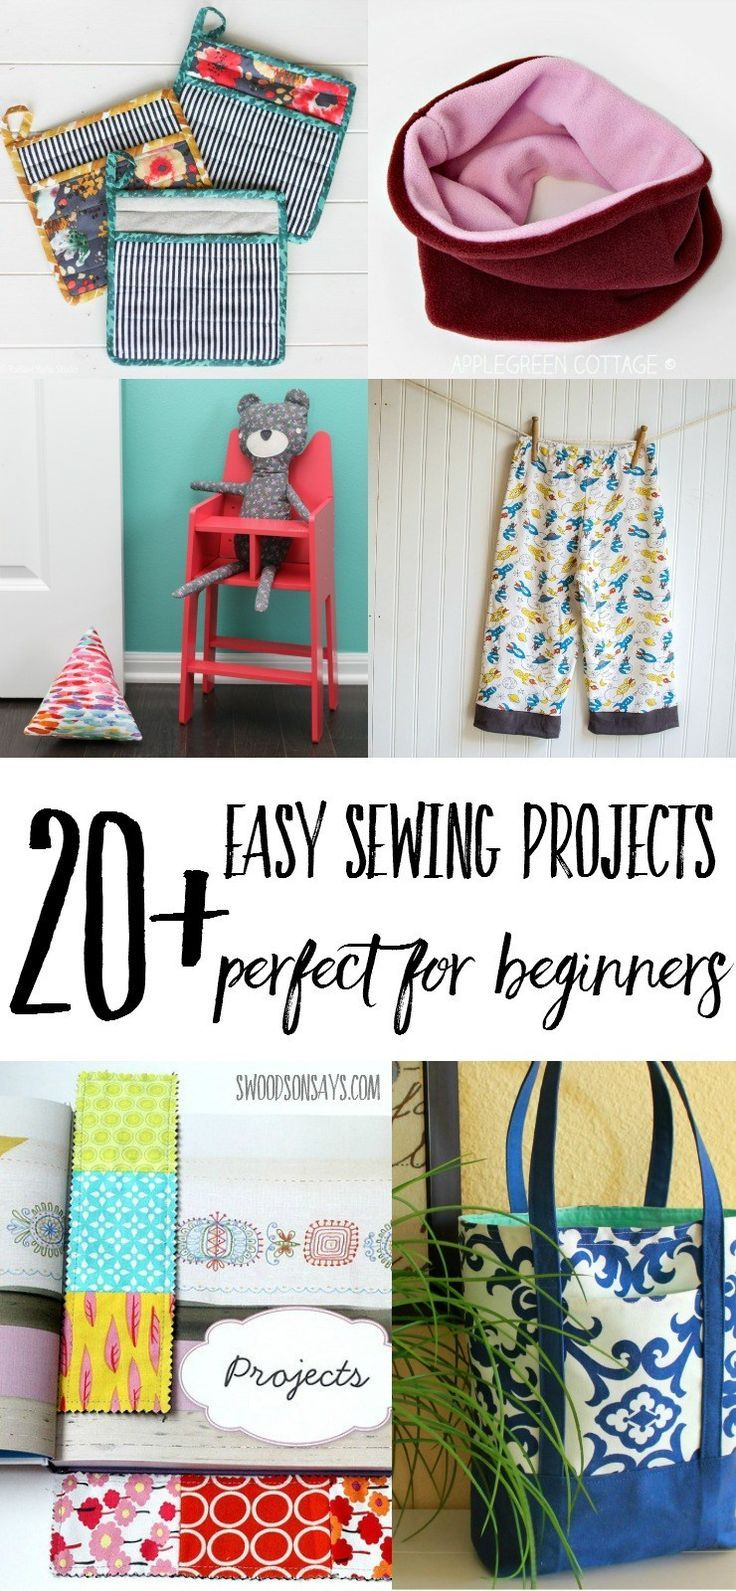 beginner sewing projects Our teach a friend to sew series is off to a great start we have six weeks of tips, fun projects and giveaways (like a new pfaff sewing machine) to encourage you to learn to sew or to teach a friend to sew.